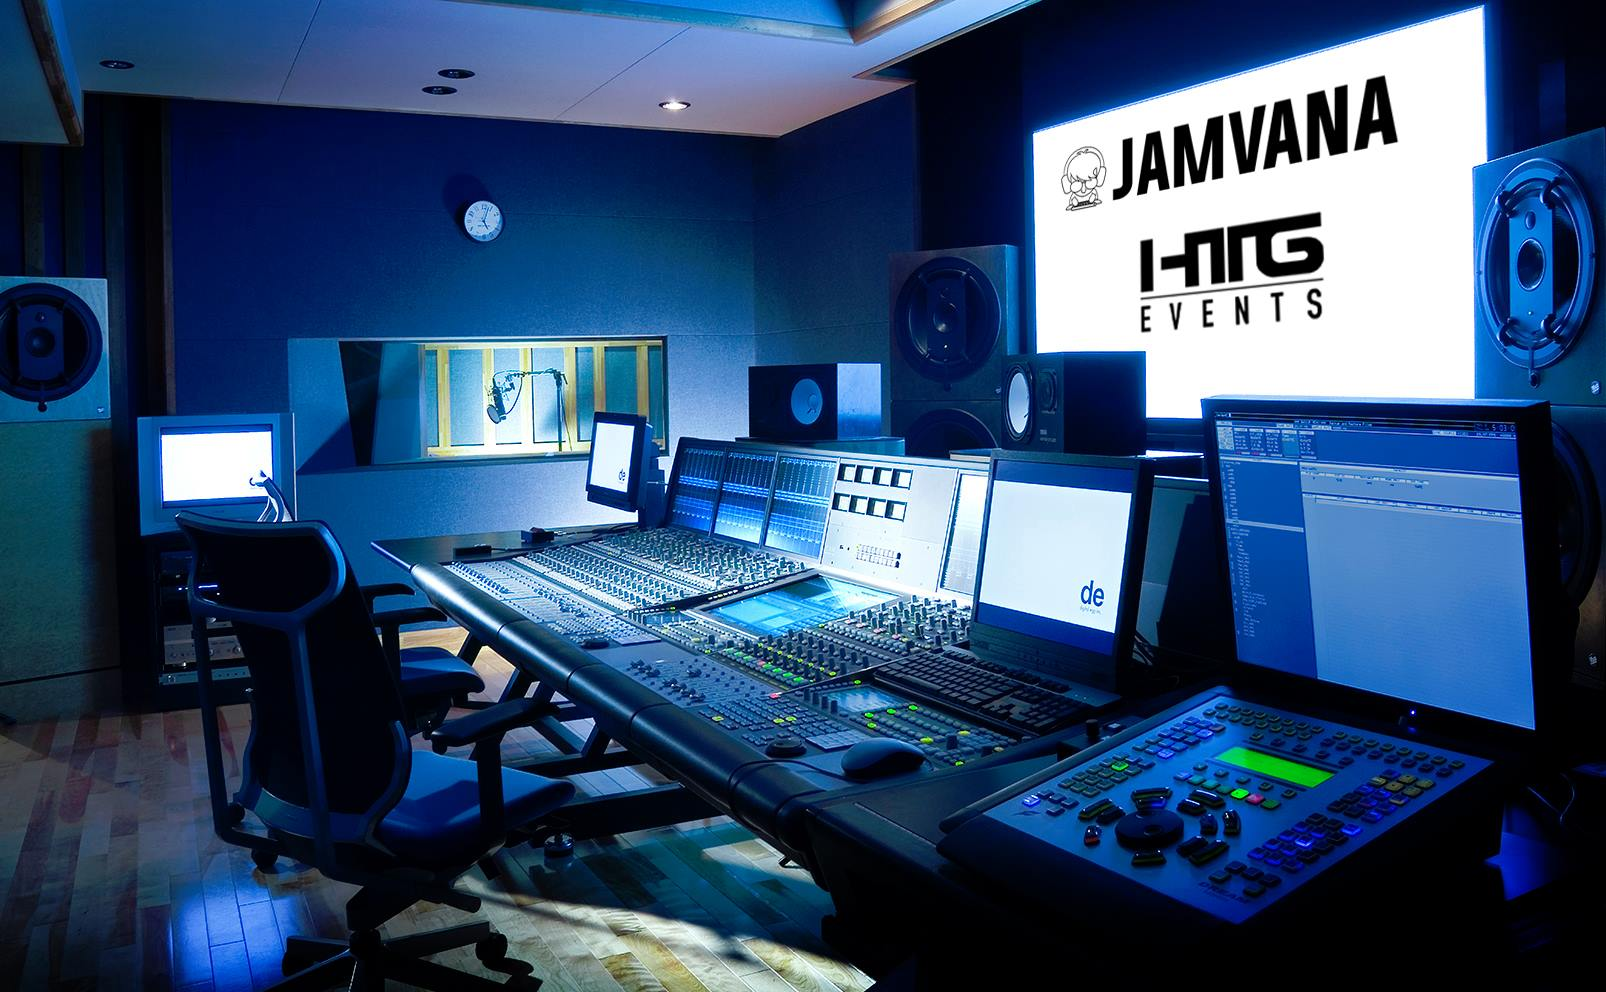 Jamvana HTG events